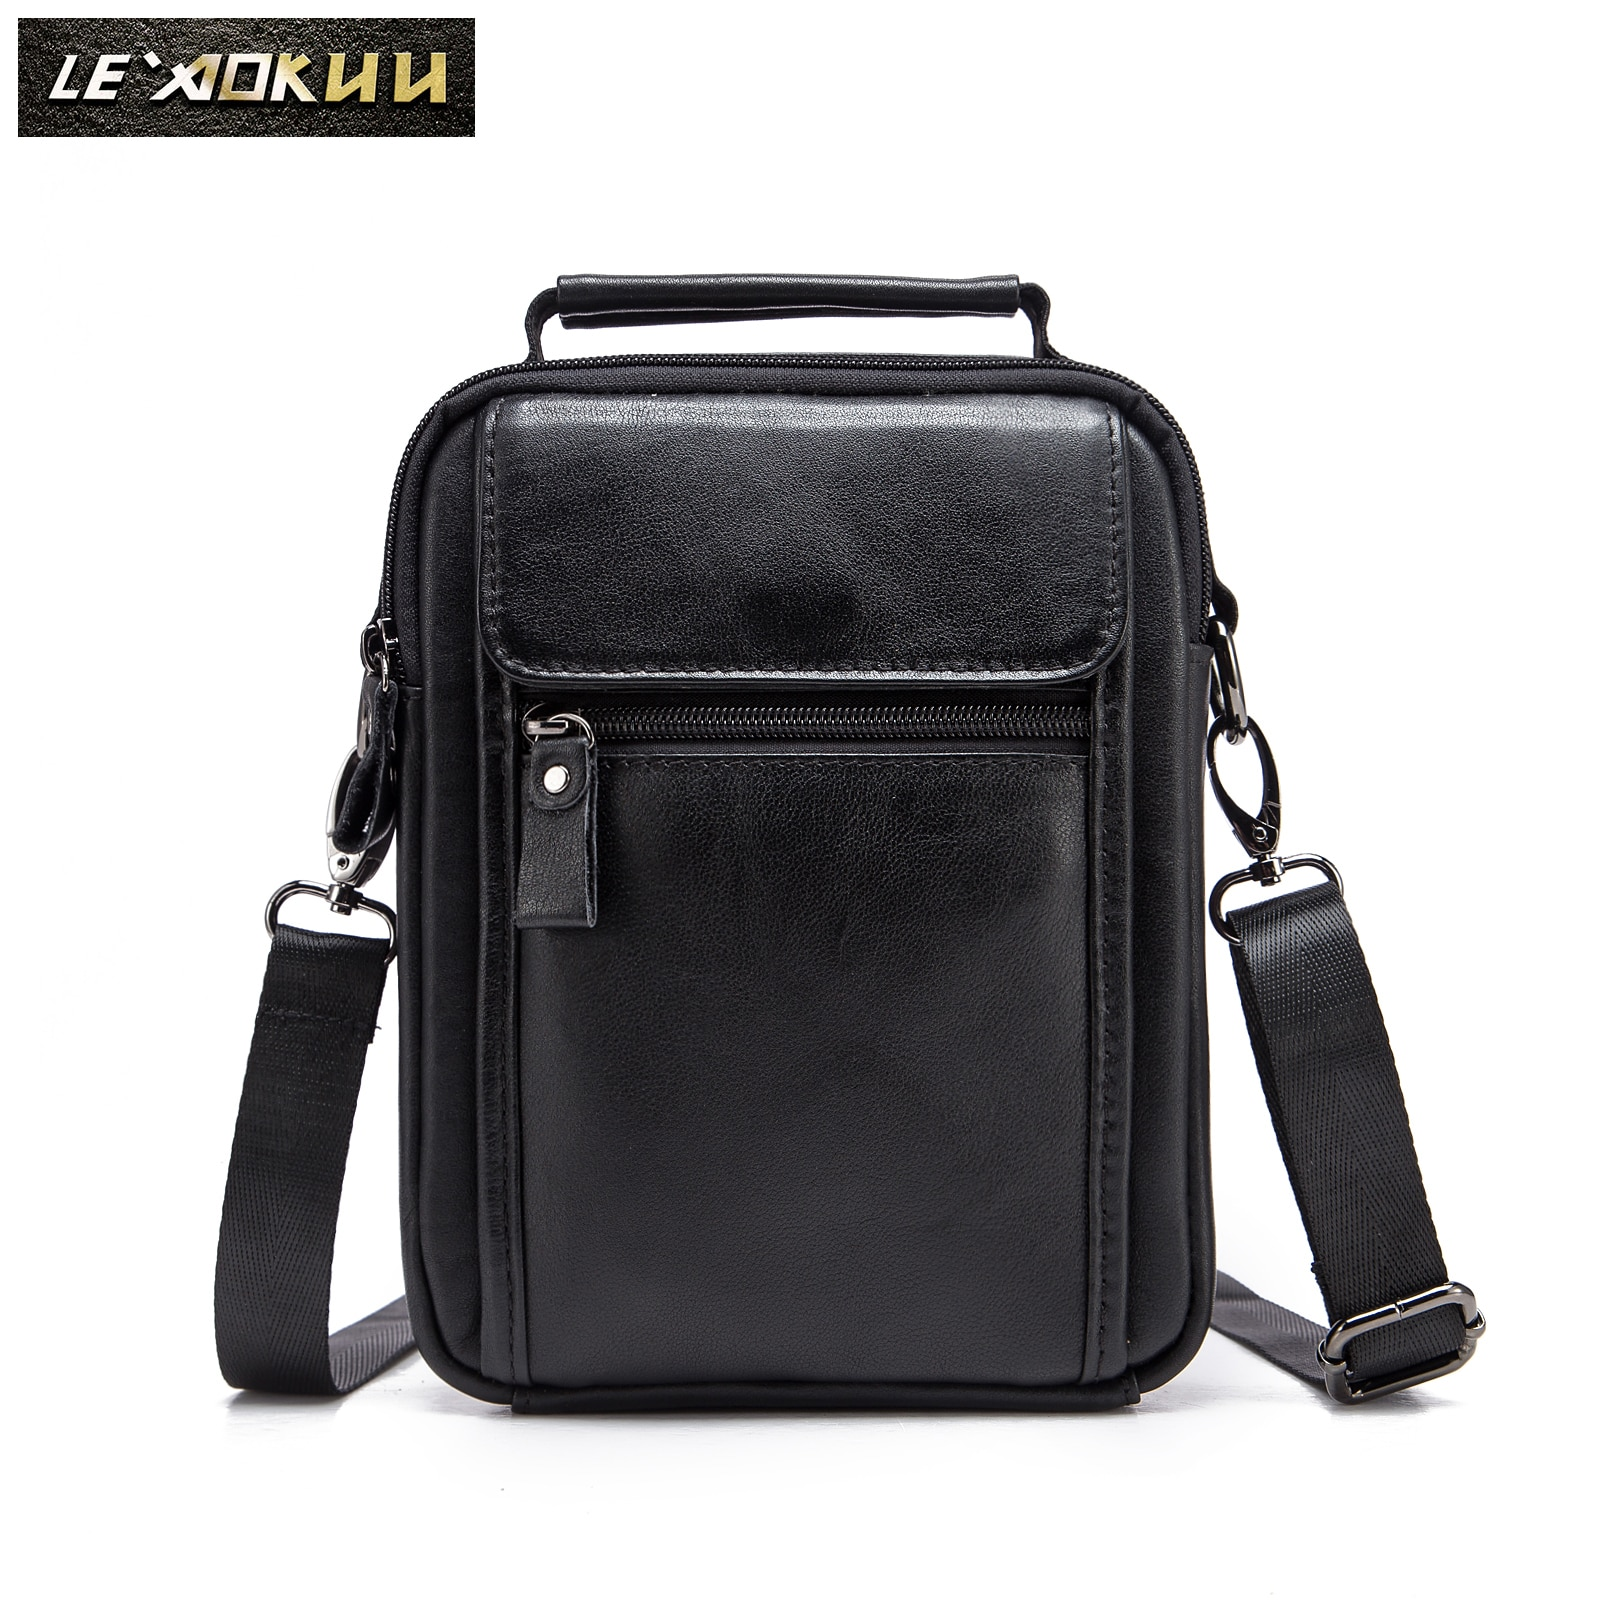 Genuine Leather Male Fashion Casual Design Satchel Messenger Shoulder Strap Bag 8